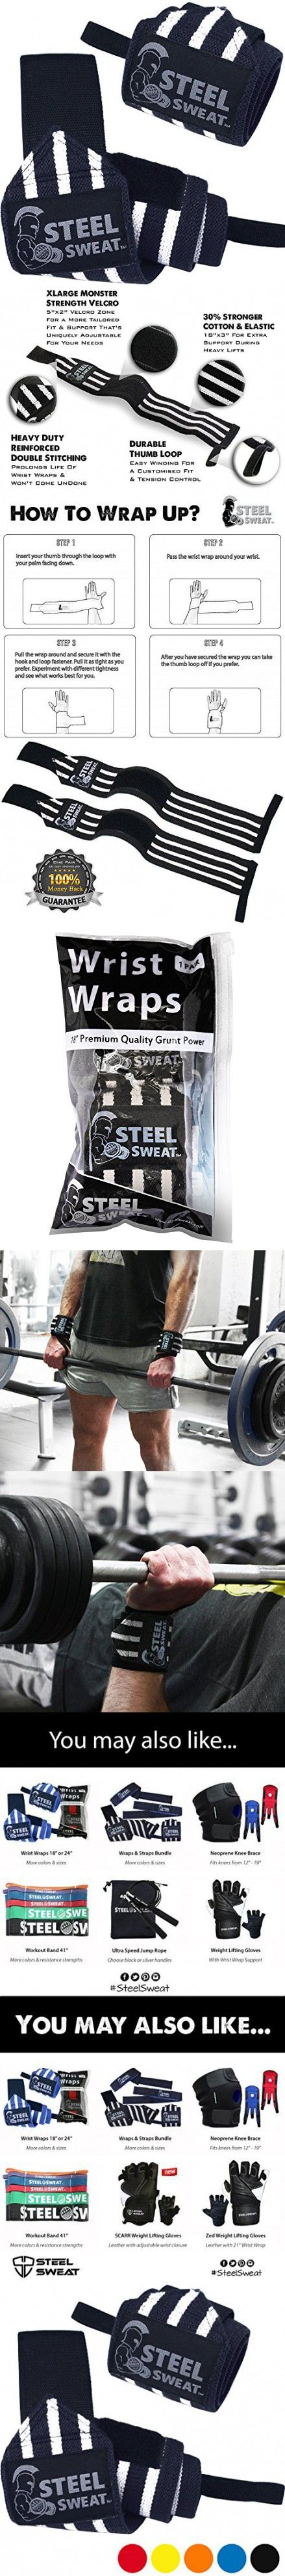 Steel Sweat Wrist Wraps 18 inches for Weight Lifting, Gym and Crossfit - Premium Grade Heavy Duty to Extreme Strength for best wrist support when Weightlifting - Brace and Guard Your Wrists